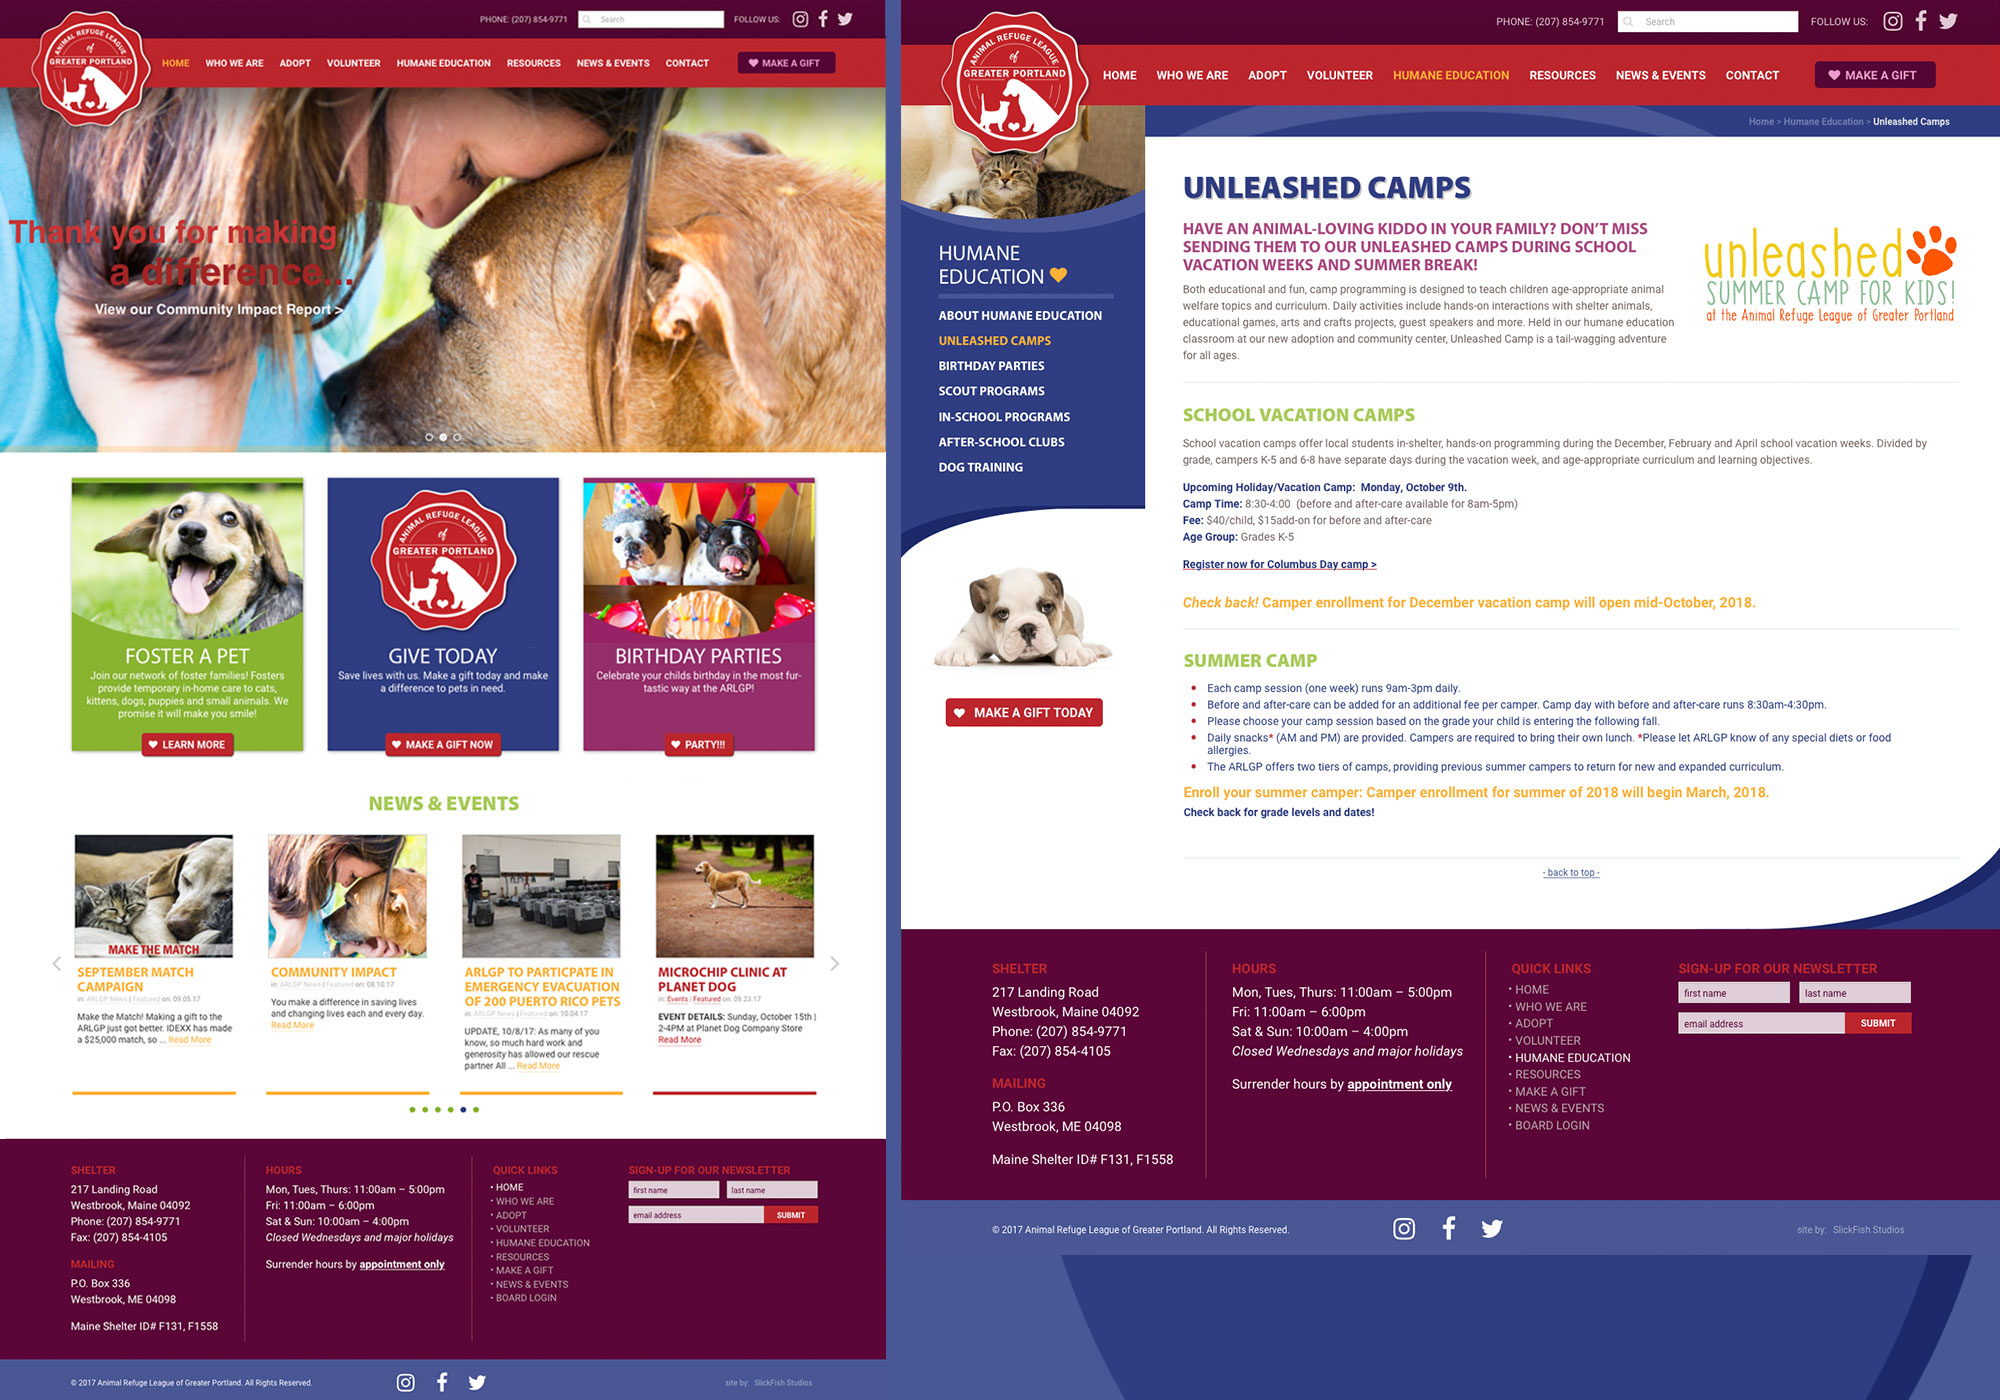 A composite of alternate homepage for the Animal Refuge League of Greater Portland website designed by SlickFish Studios and unleashed camps.